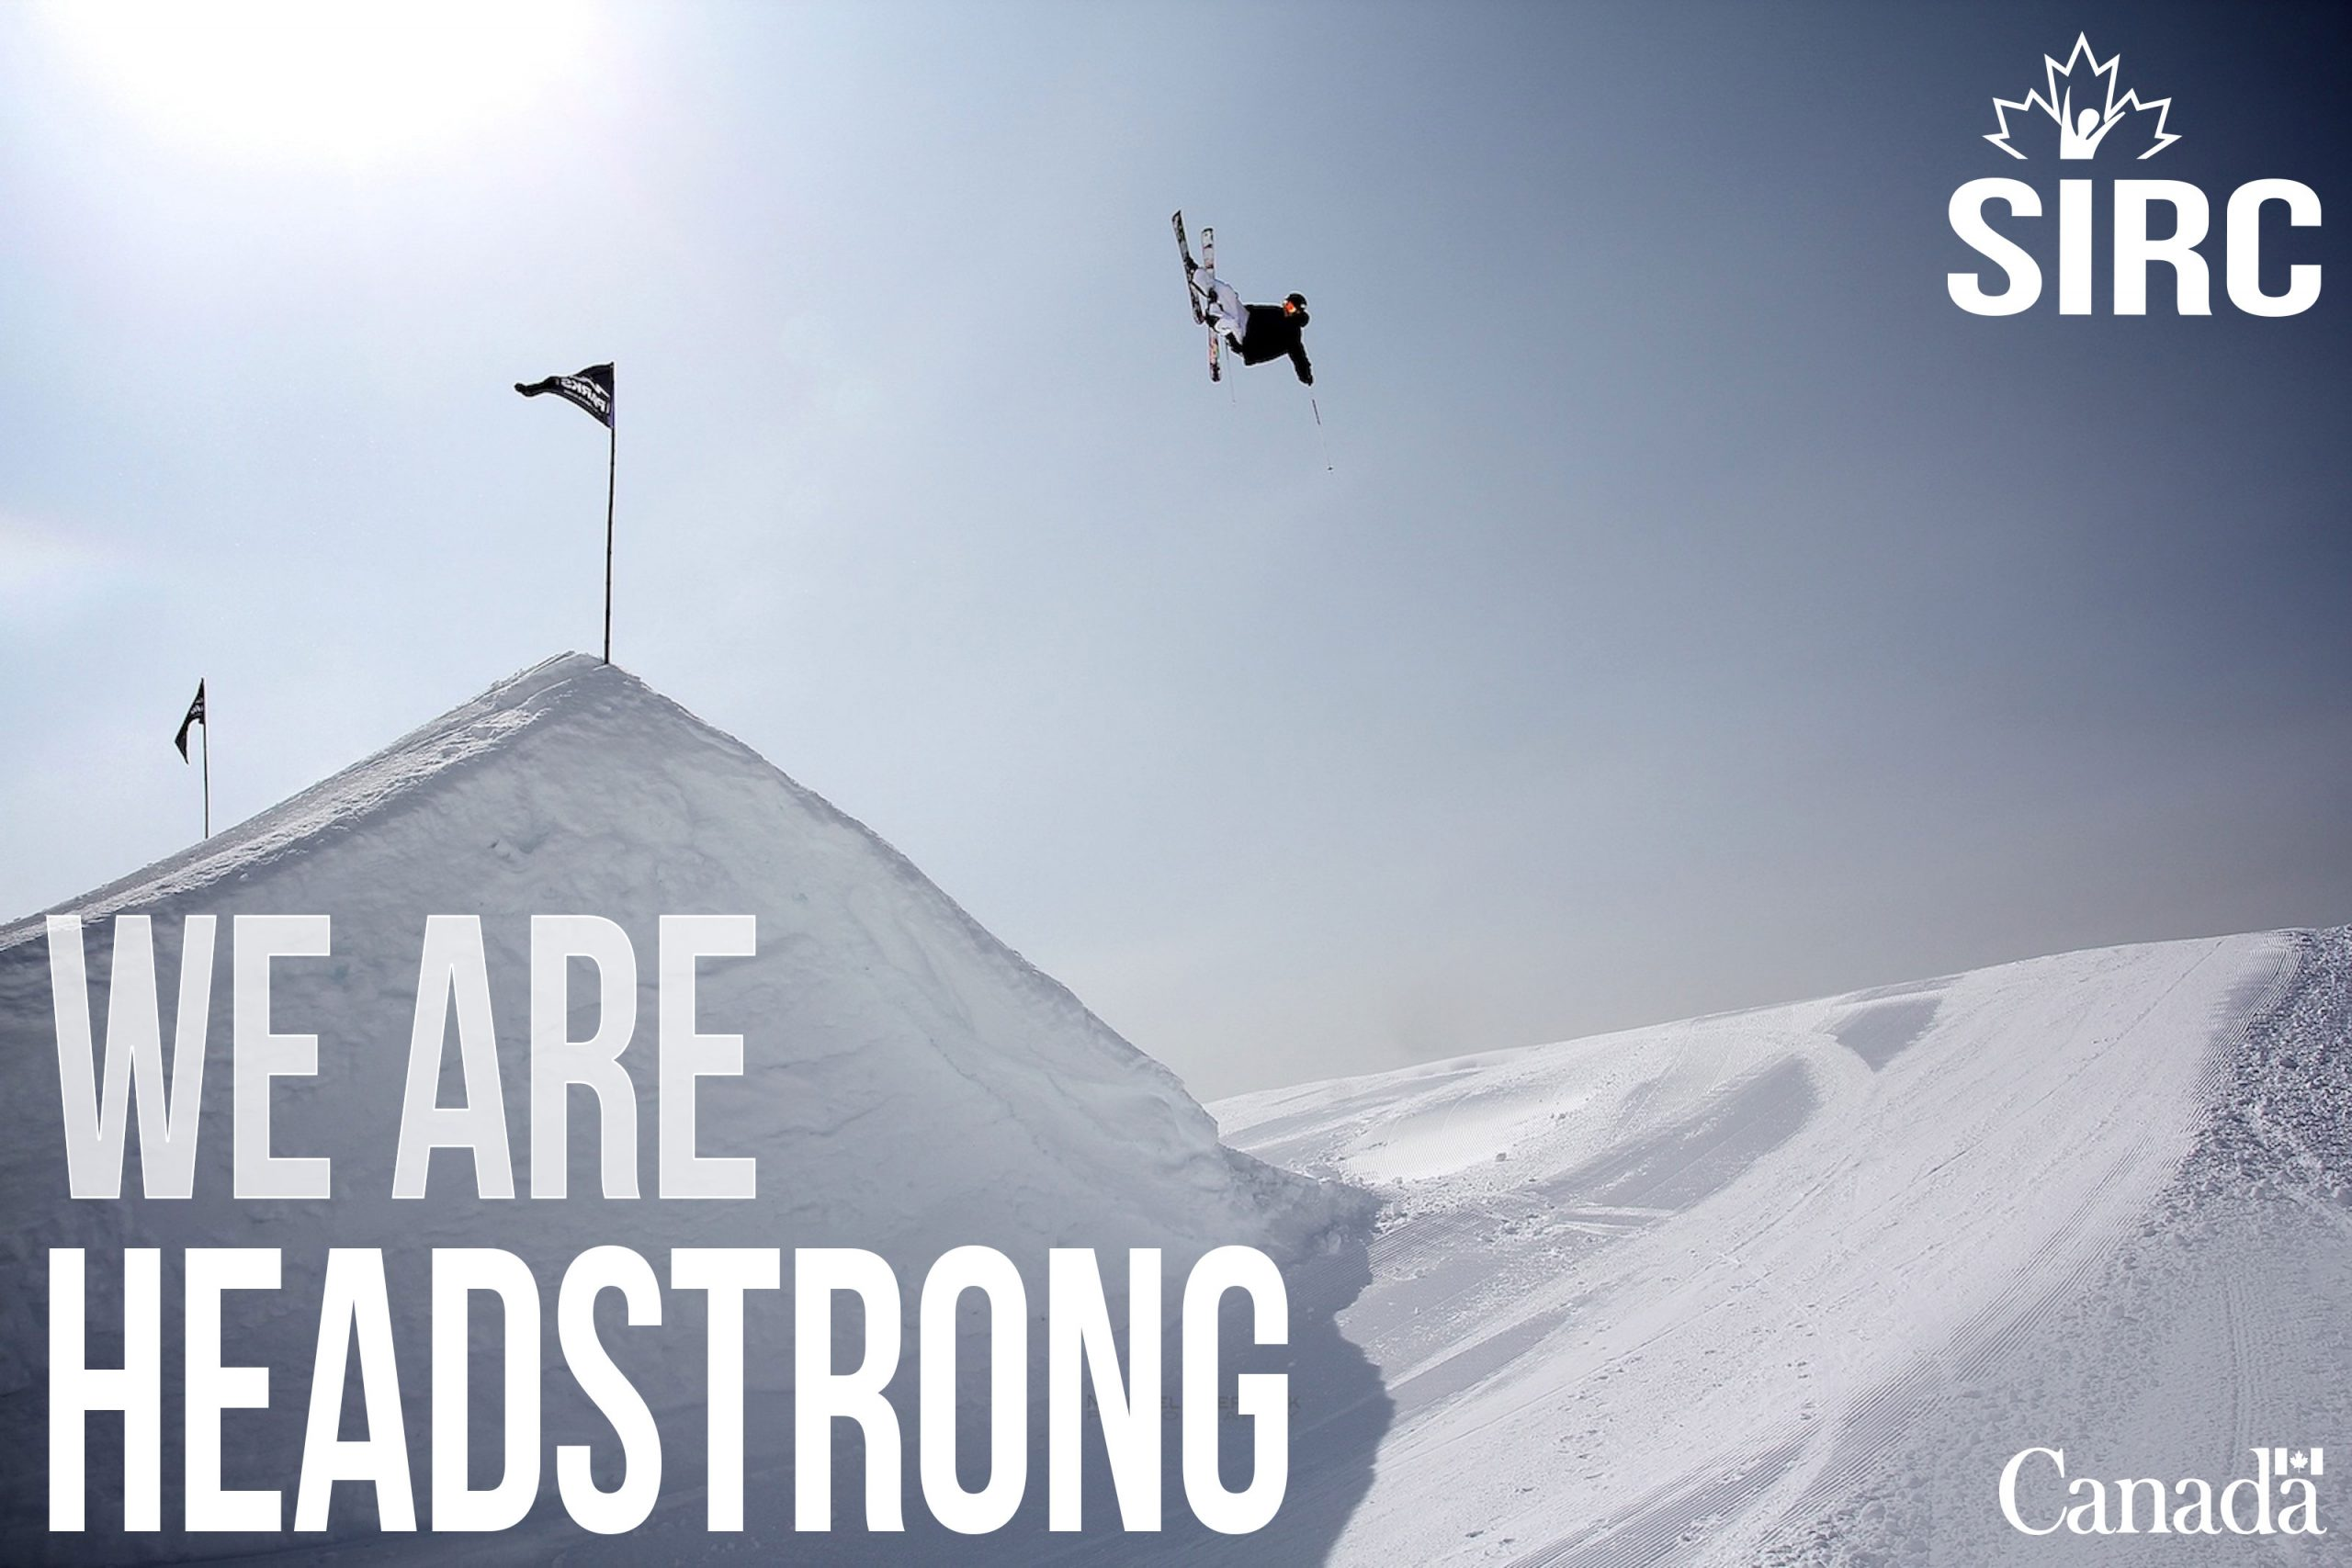 Freestyle skier in the air high above the hill. Text: We are headstrong. SIRC